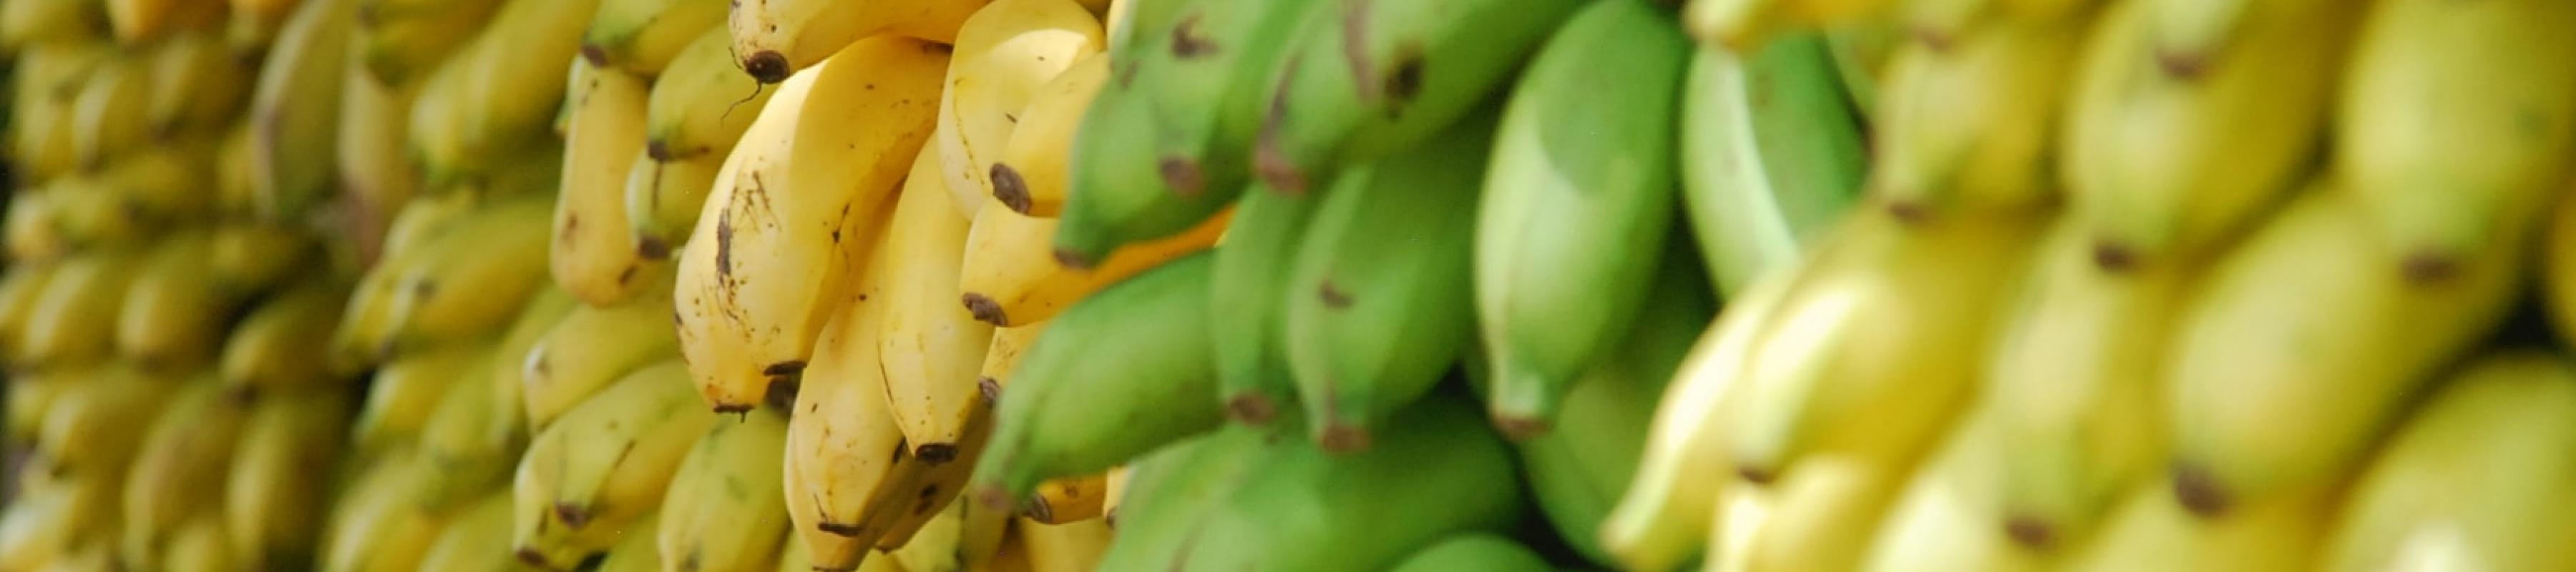 Bananas in a pile